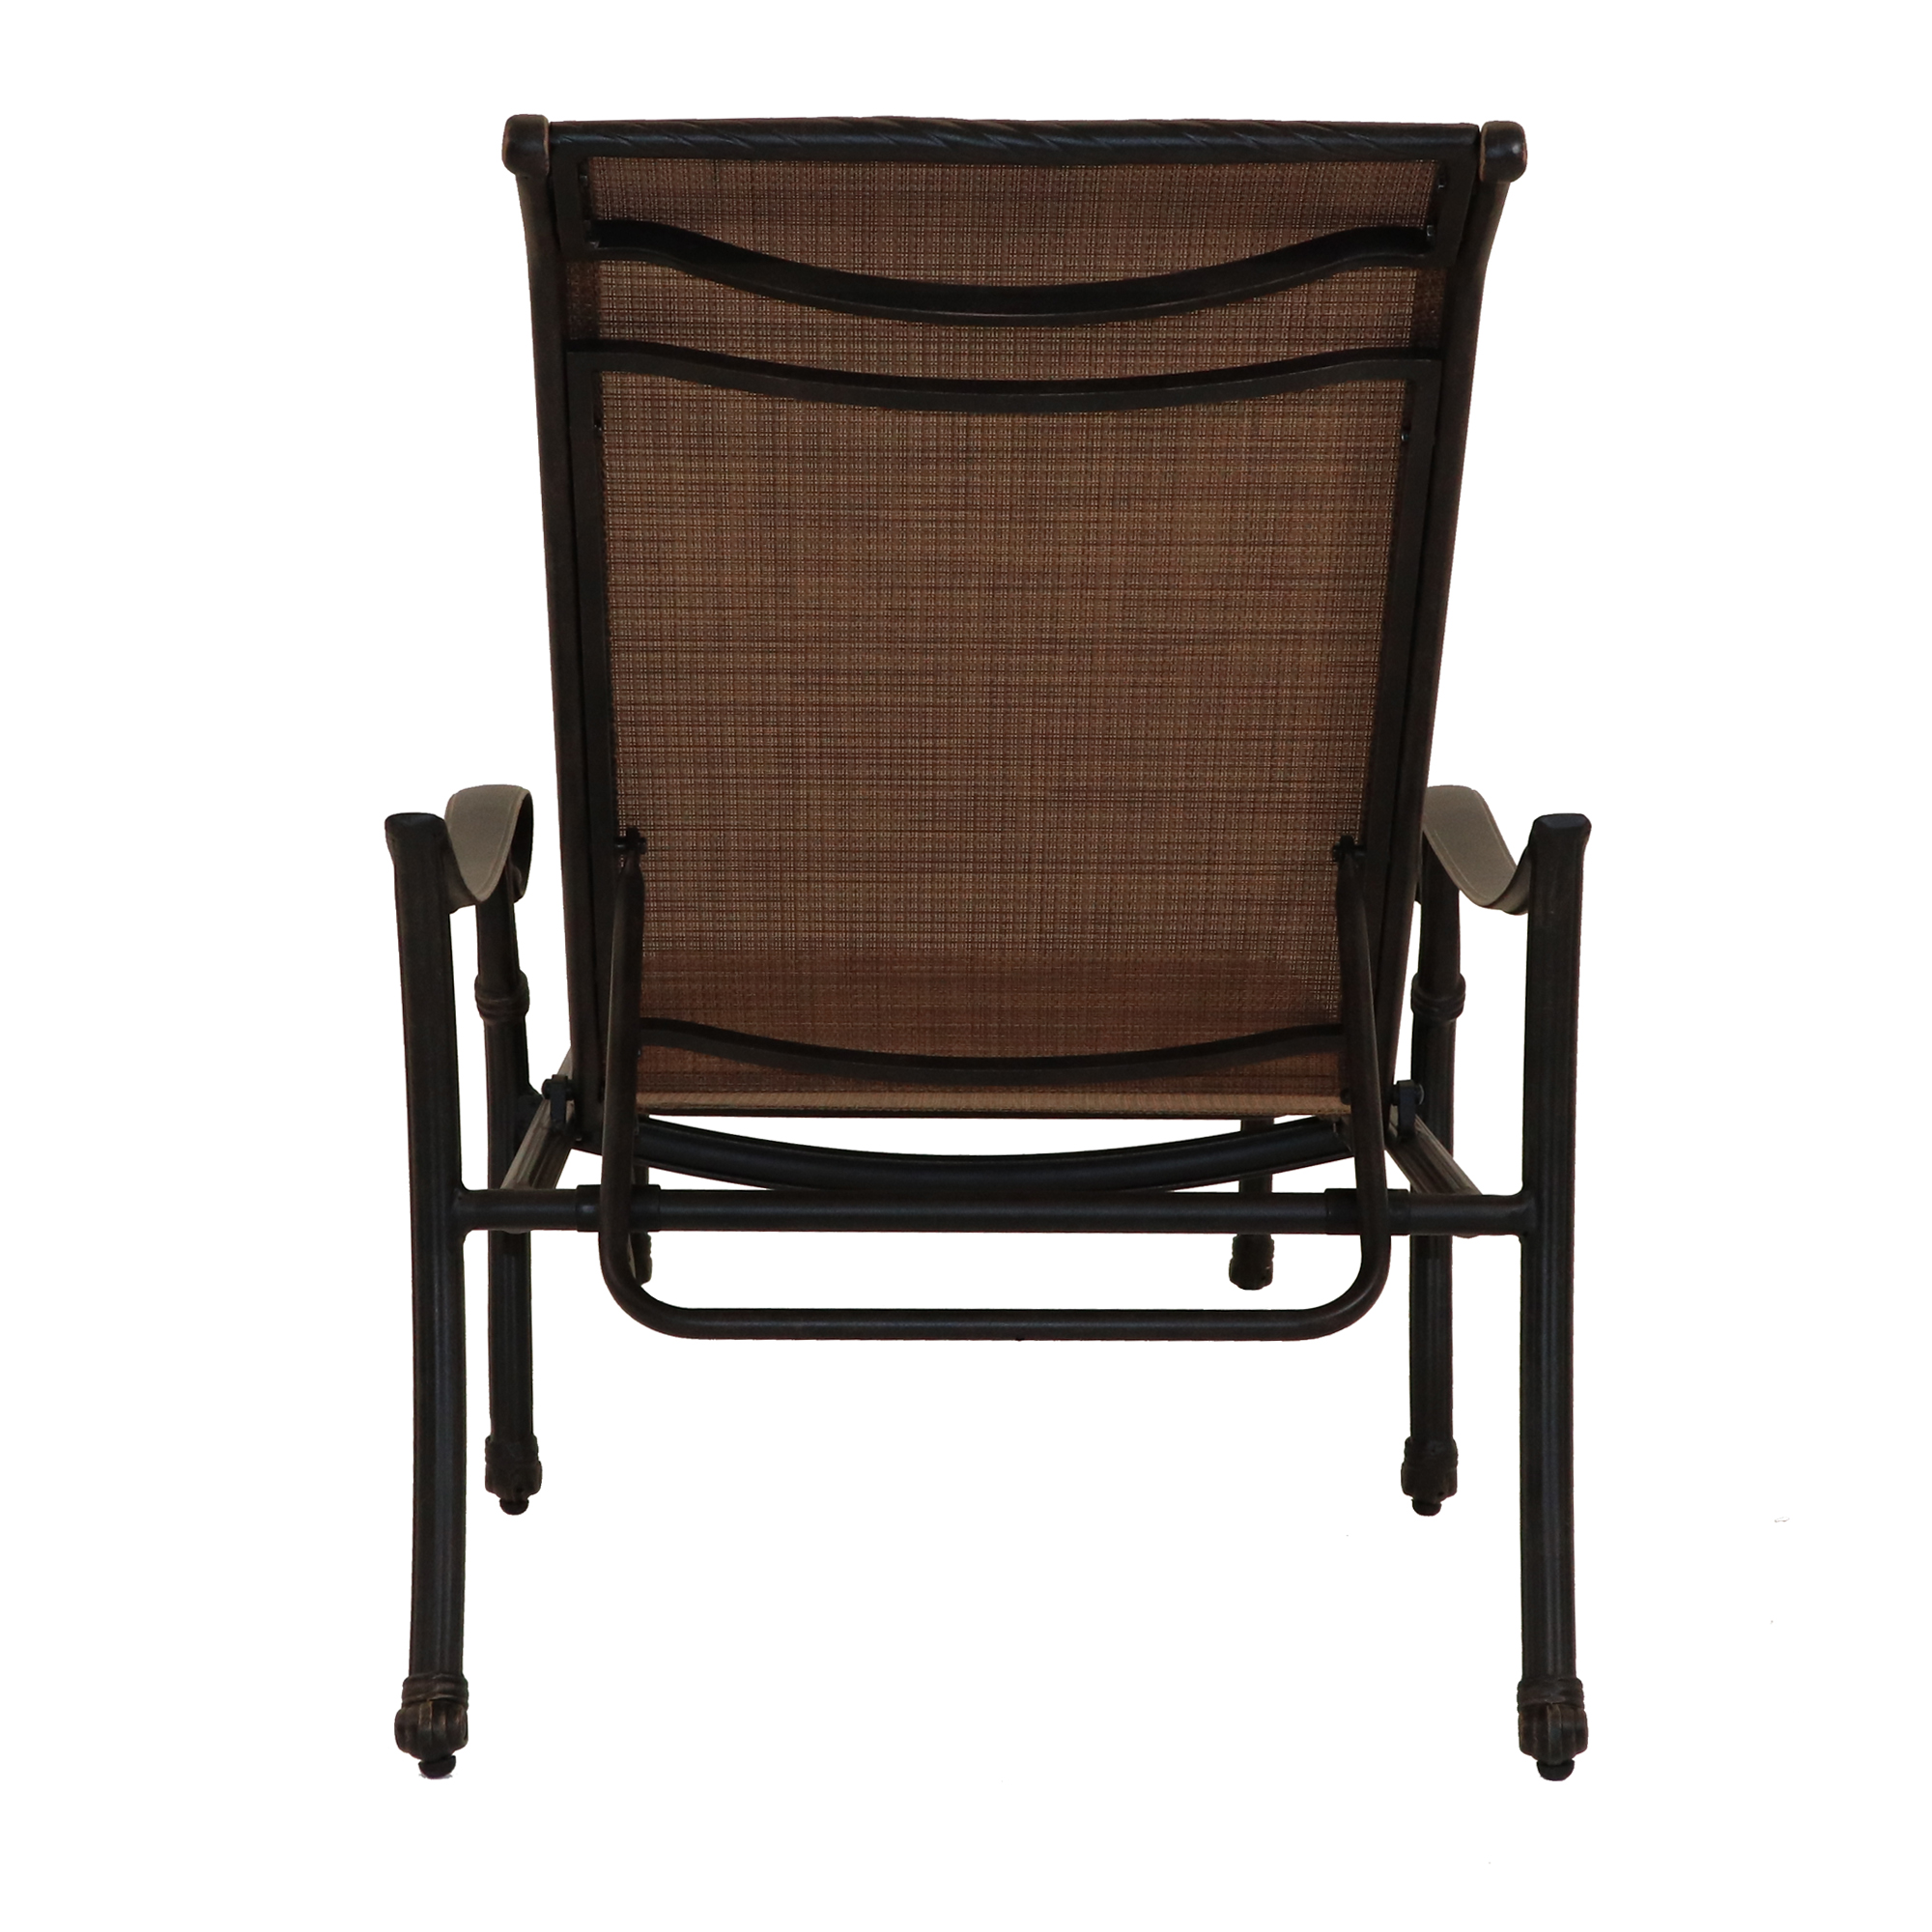 Castle Rock Sling Chaise Lounge Patio Furniture At Sun